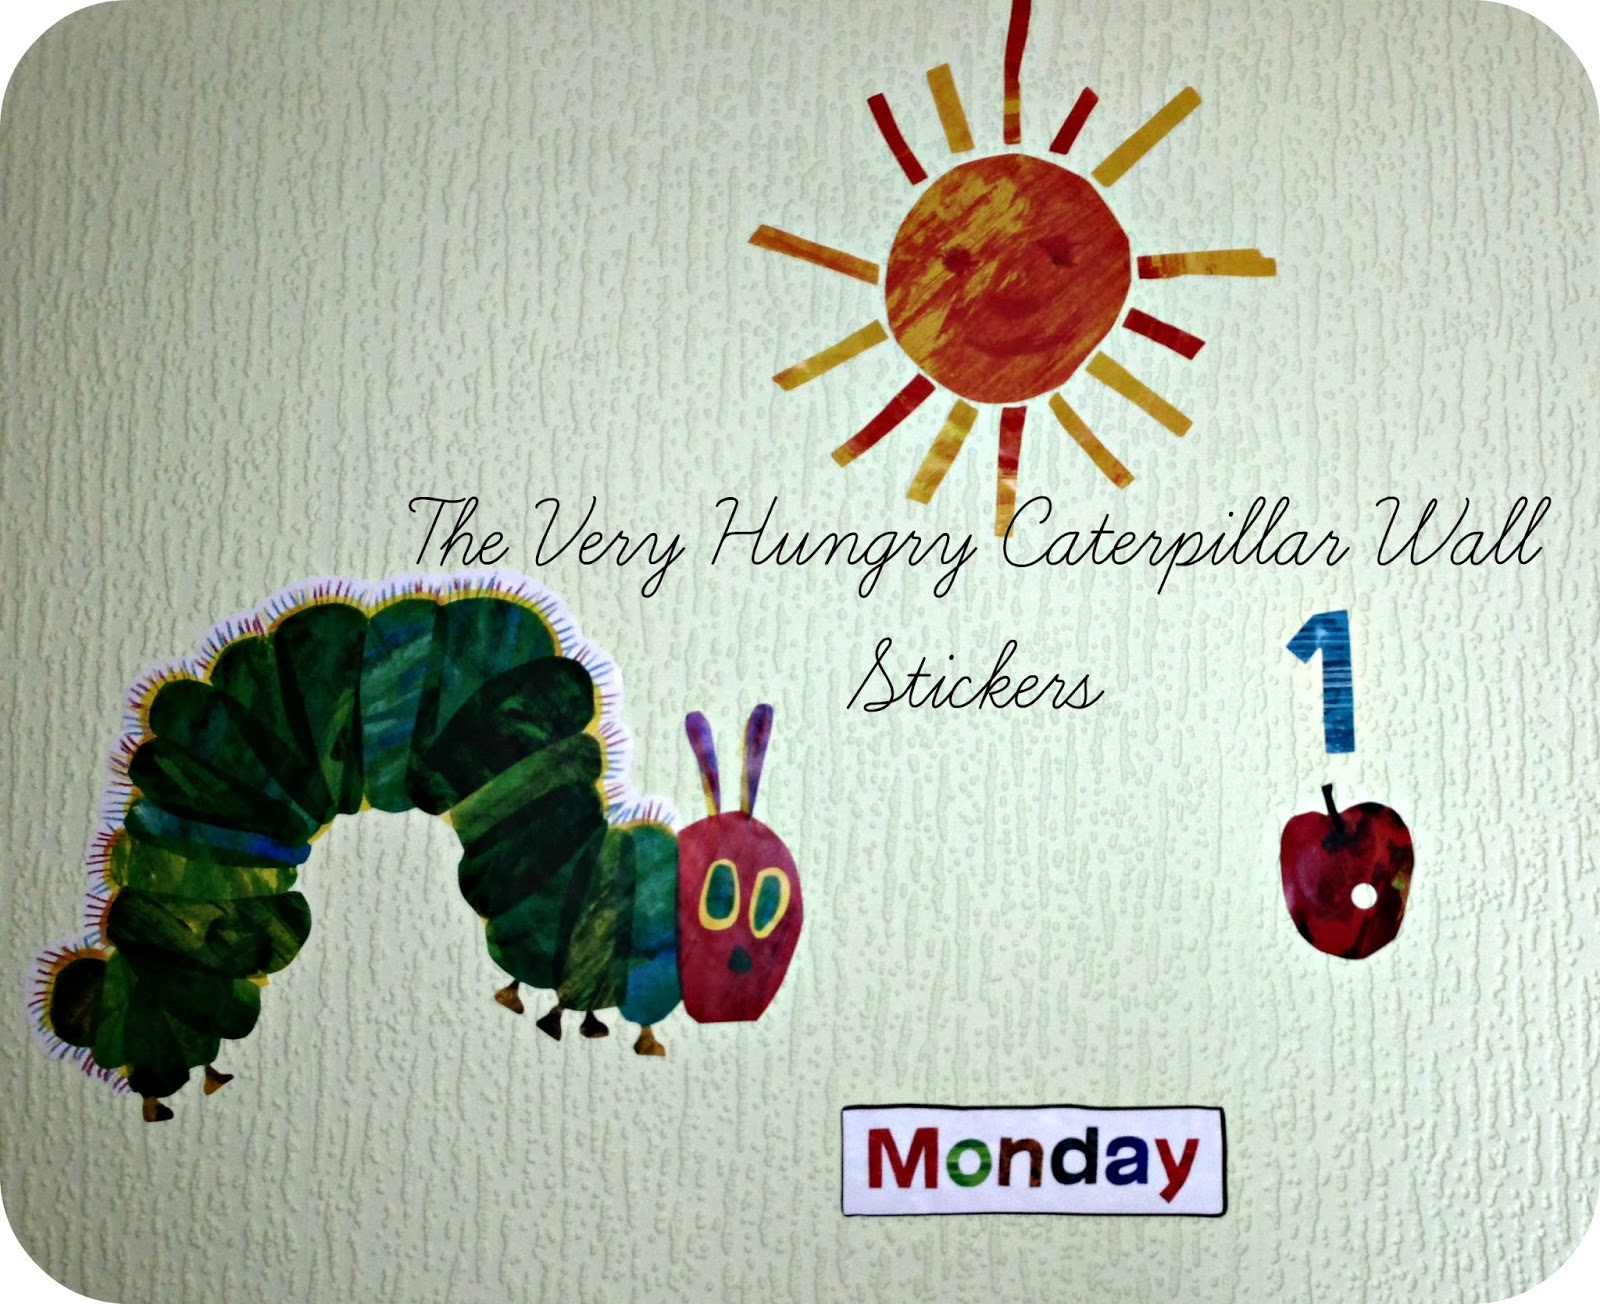 Very Hungry Caterpillar Wall Stickers Life Unexpected The Very Hungry Caterpillar Wall Stickers